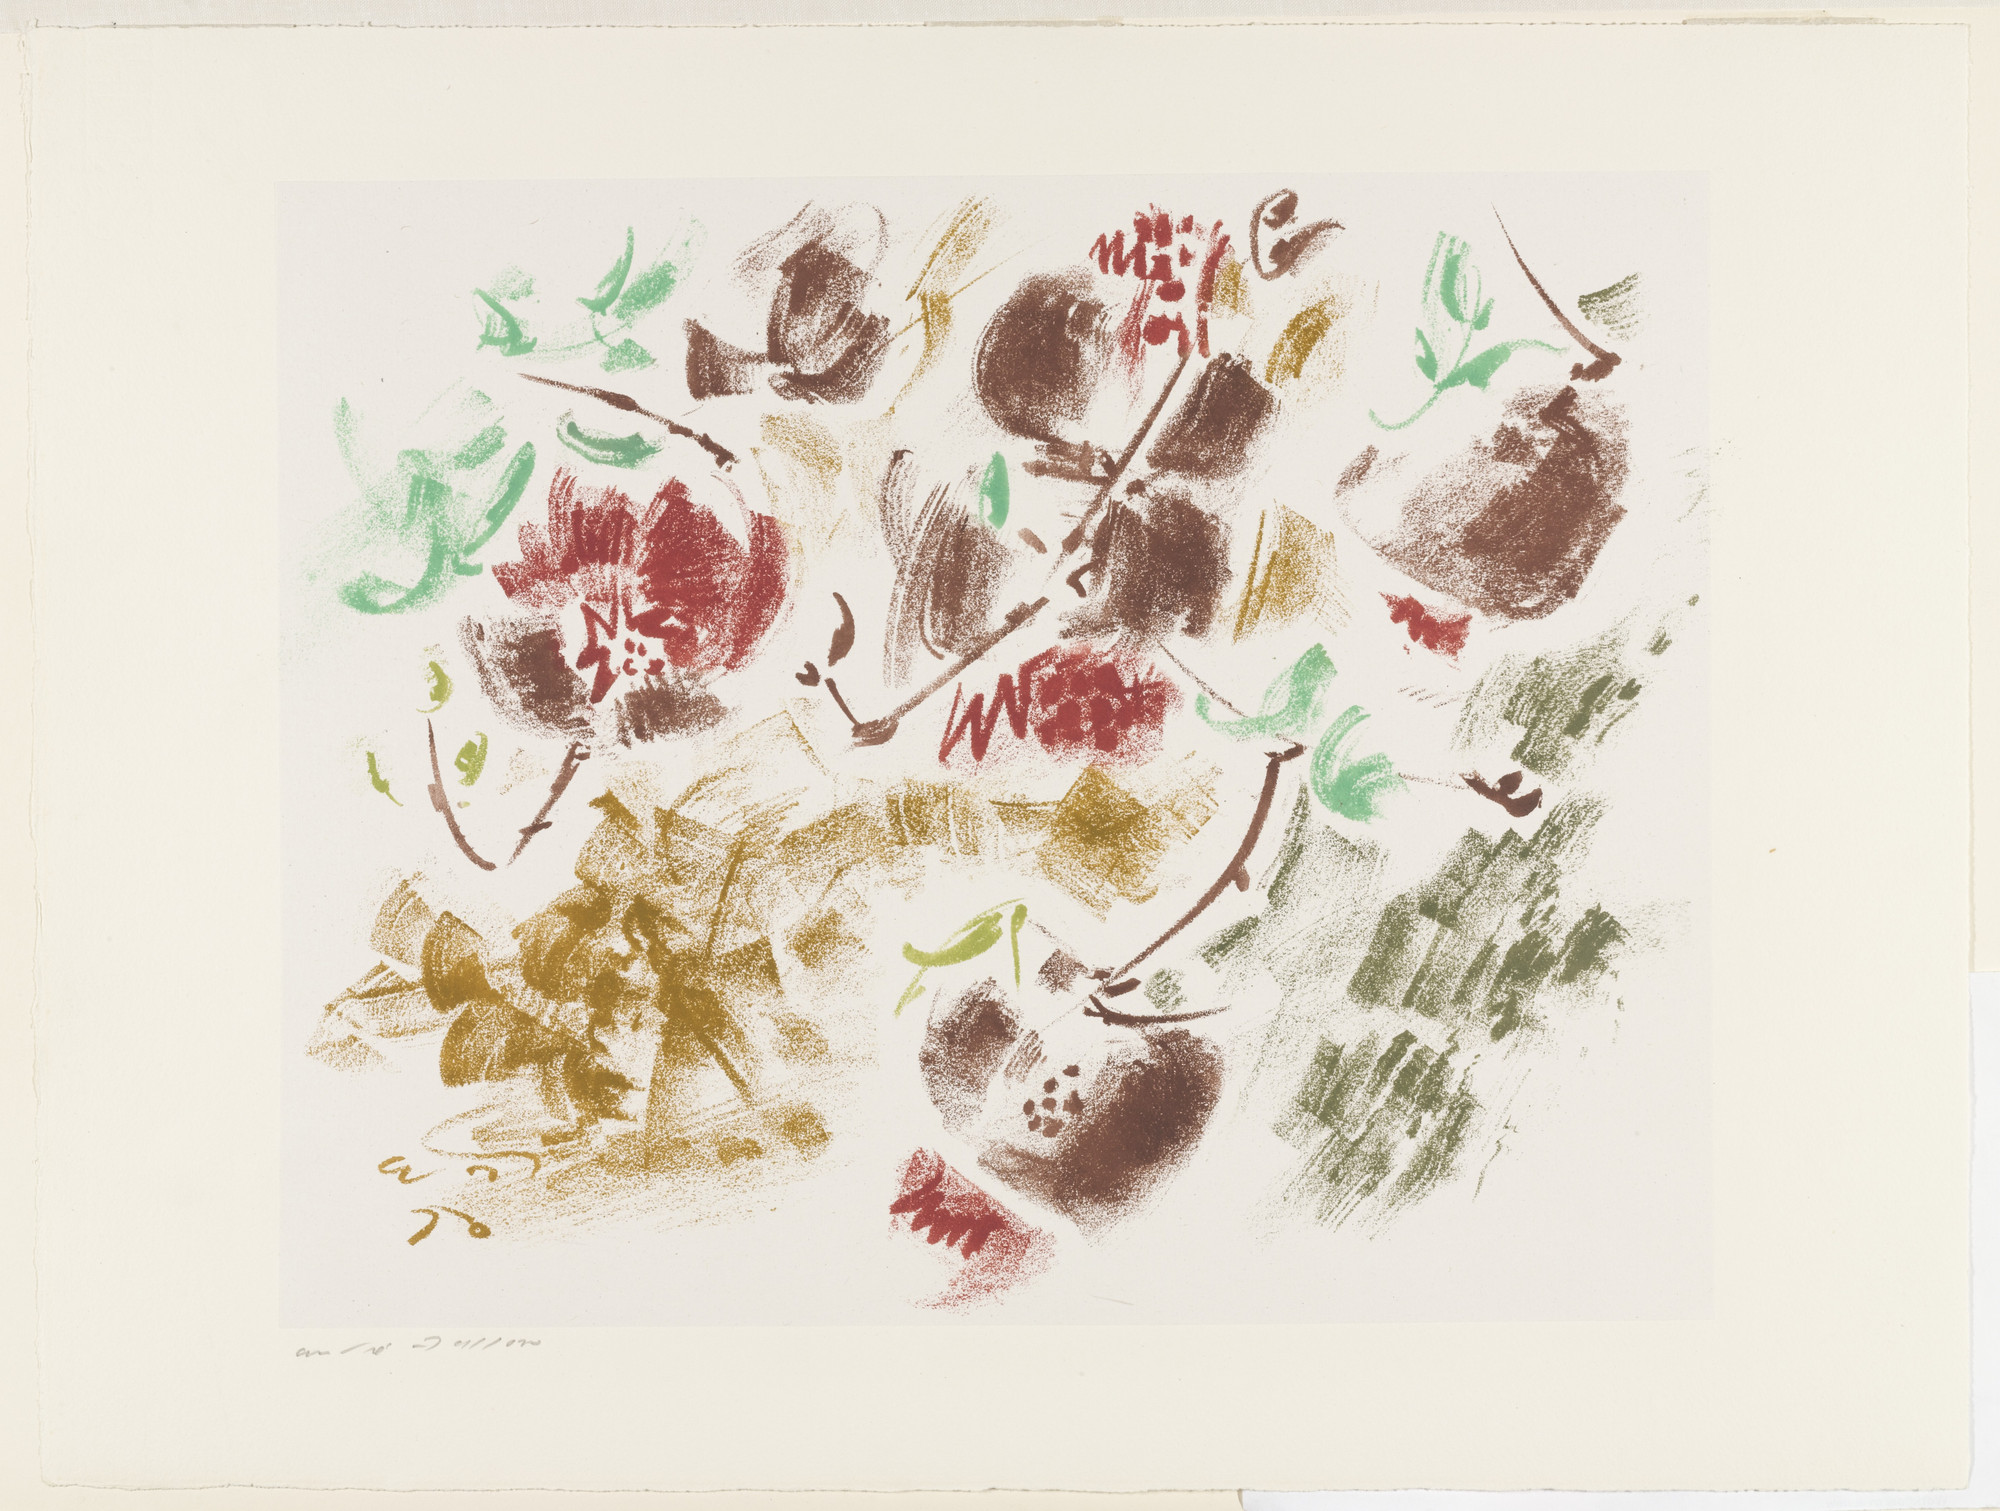 André Masson. Pomegranates in the Wind. 1951